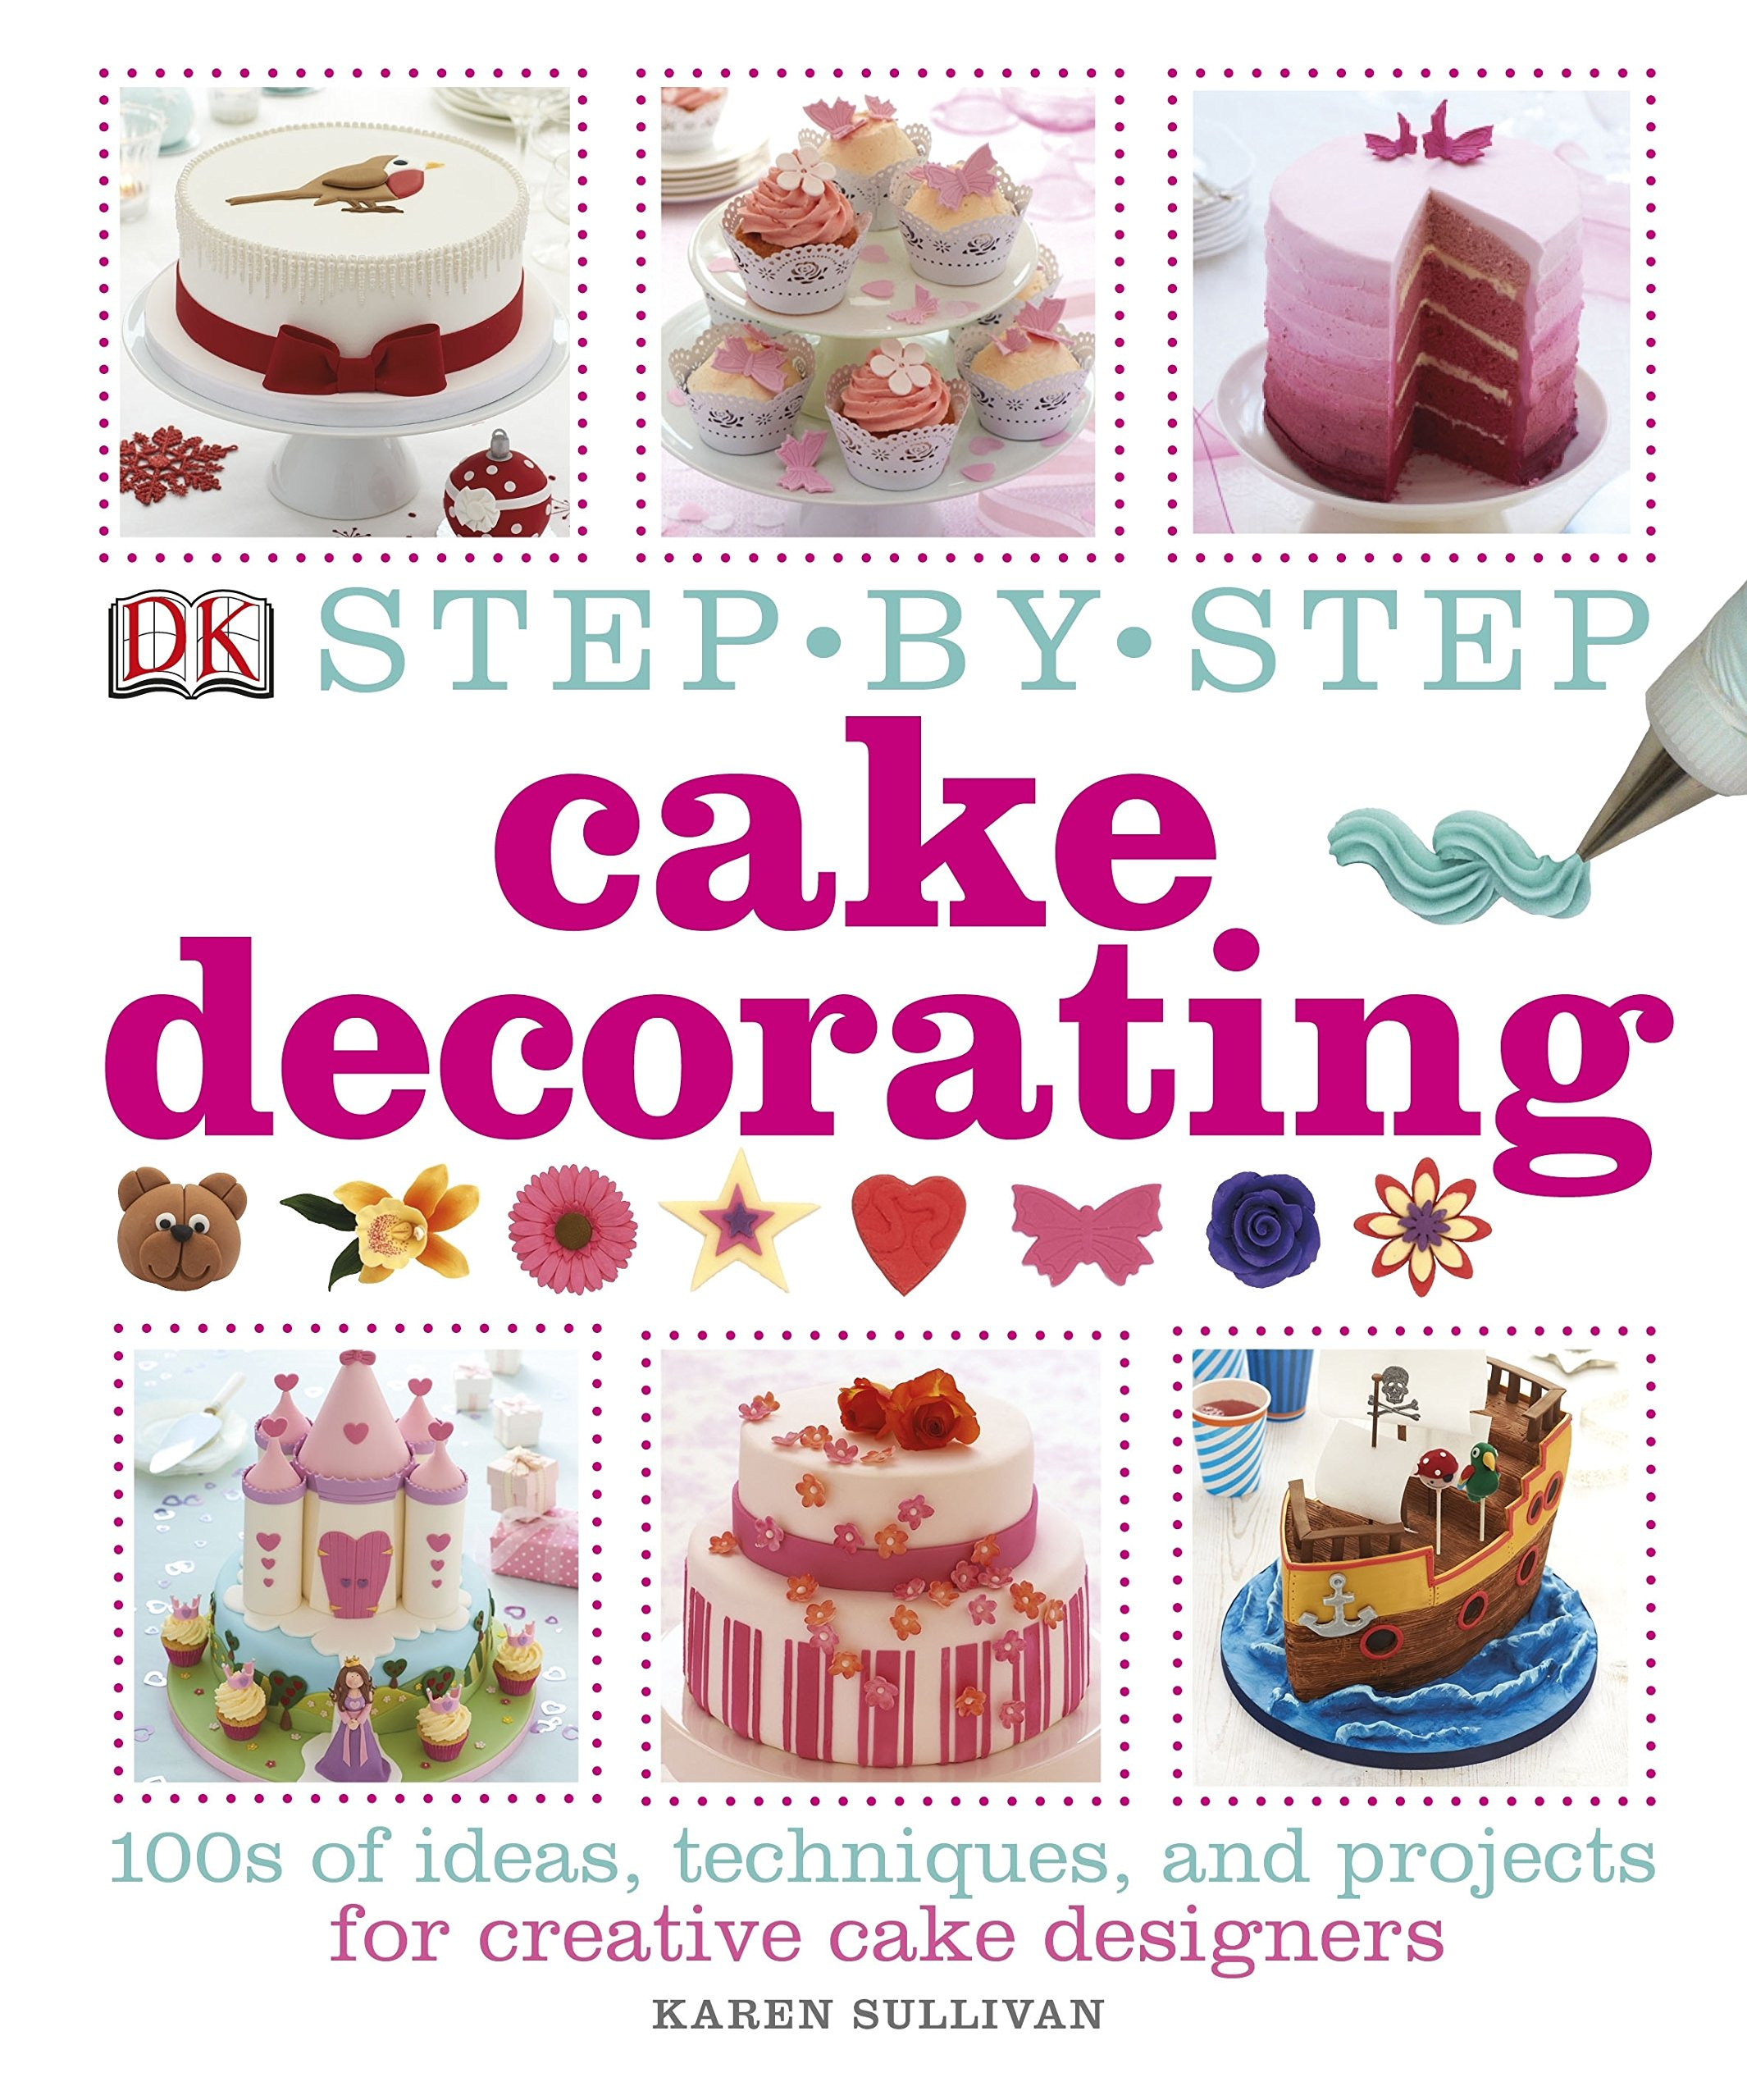 Step By Step Cake Decorating 100s Of Ideas Techniques And